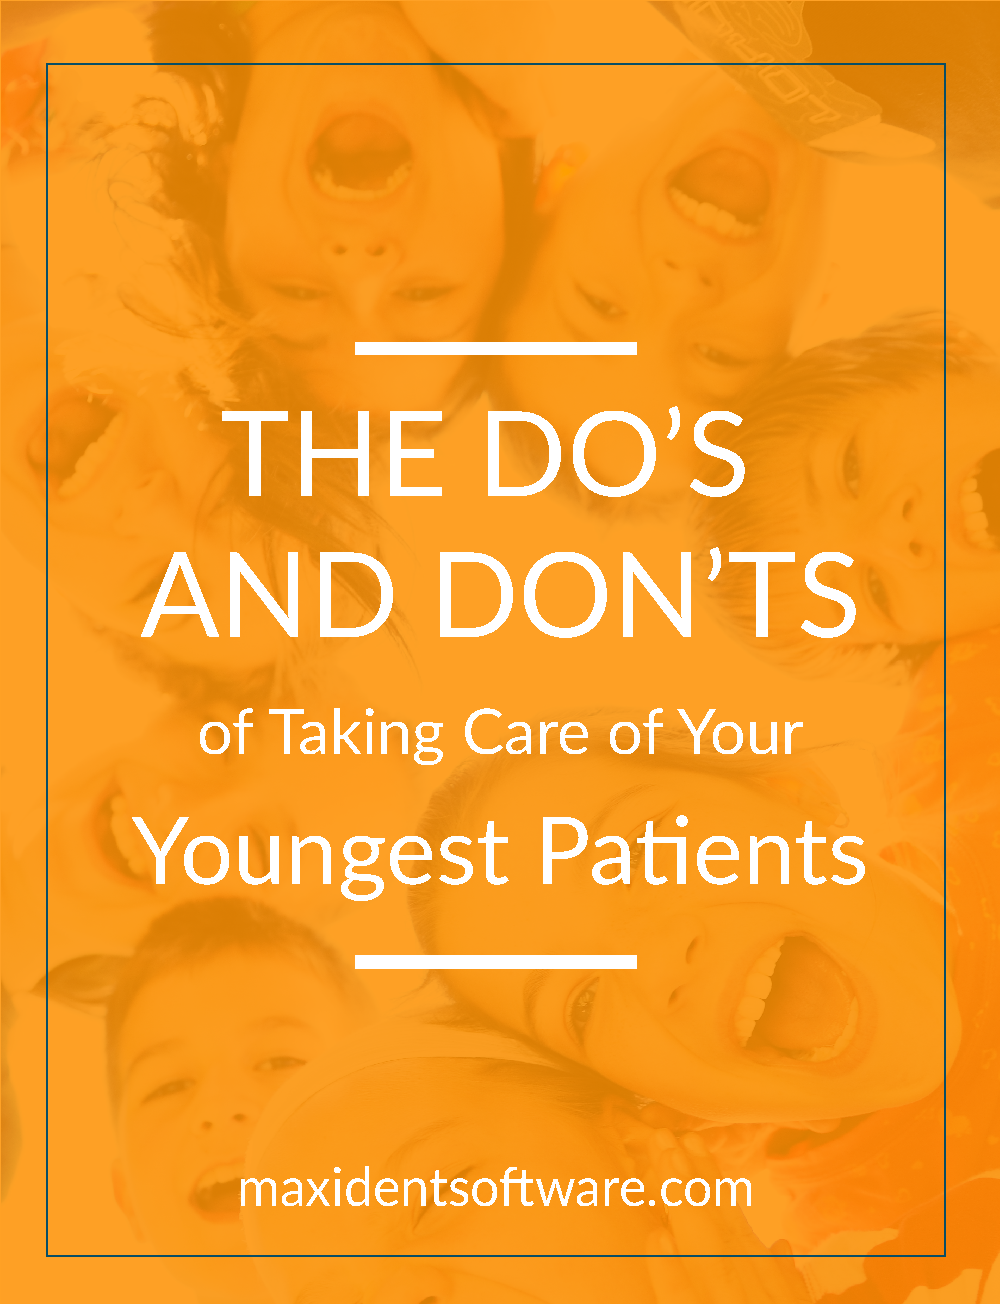 The Do's and Don'ts of Taking Care of Your Youngest Patients